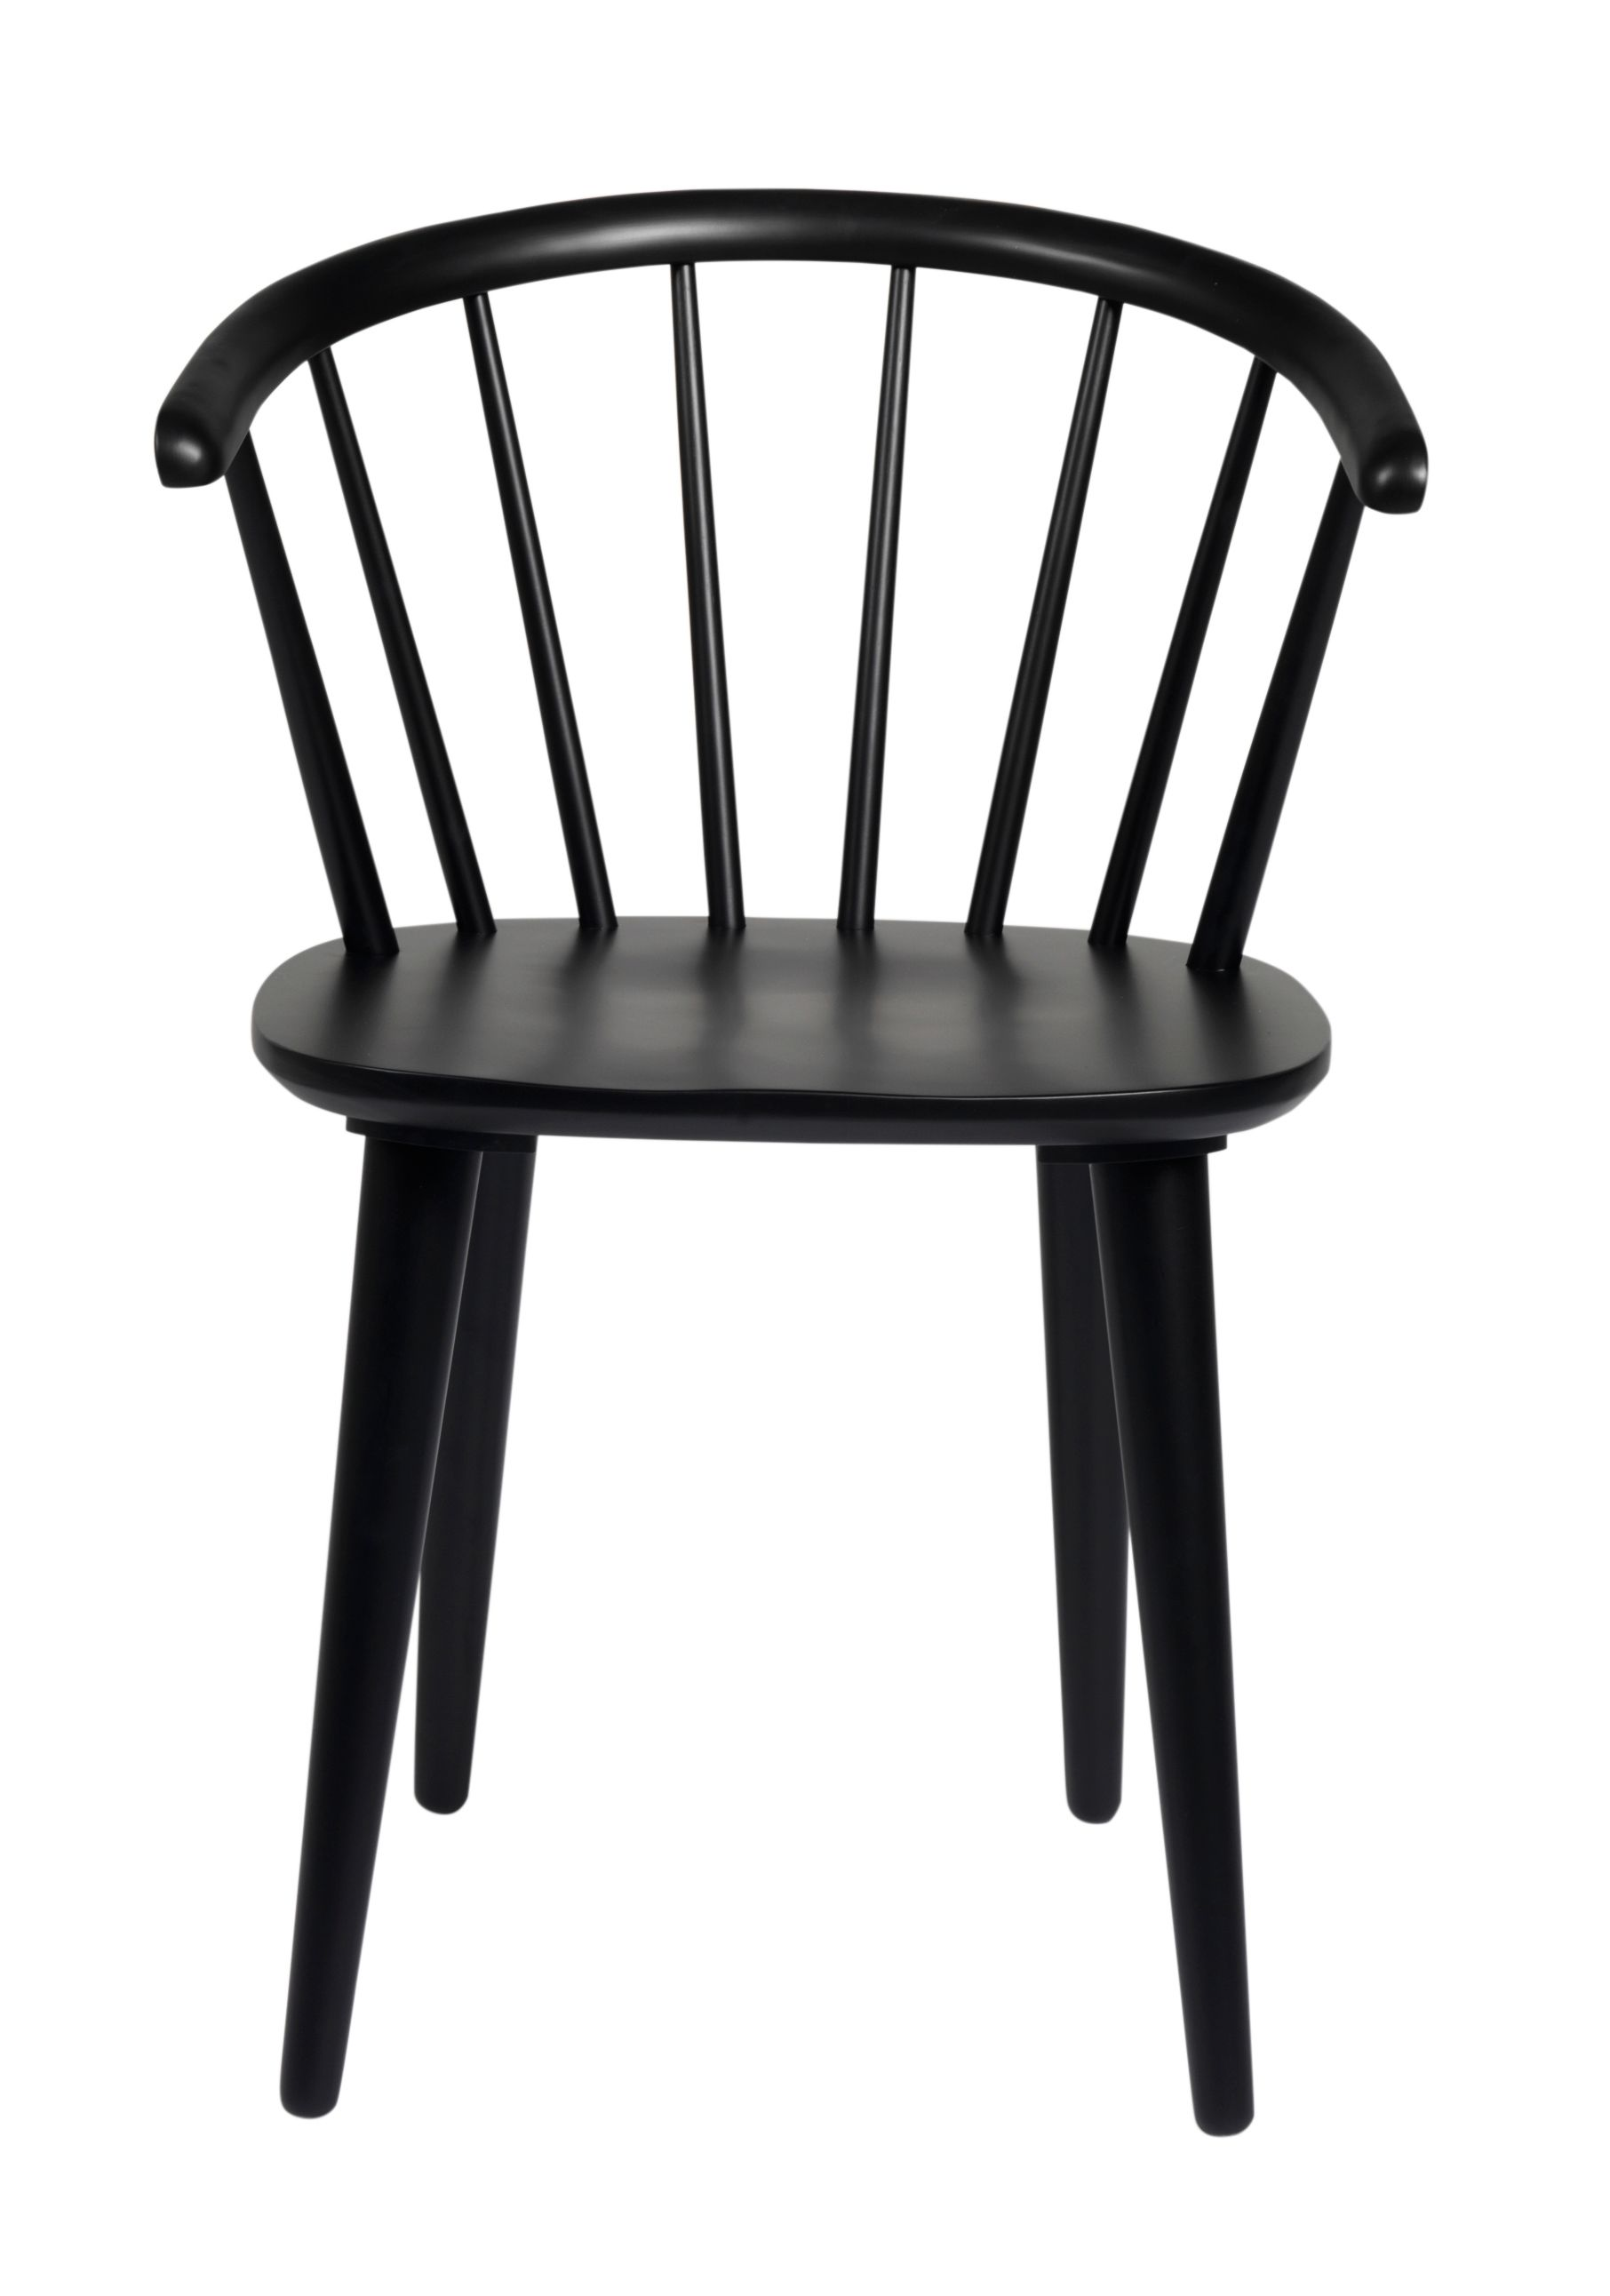 DAWSONE Carmen Black Chair